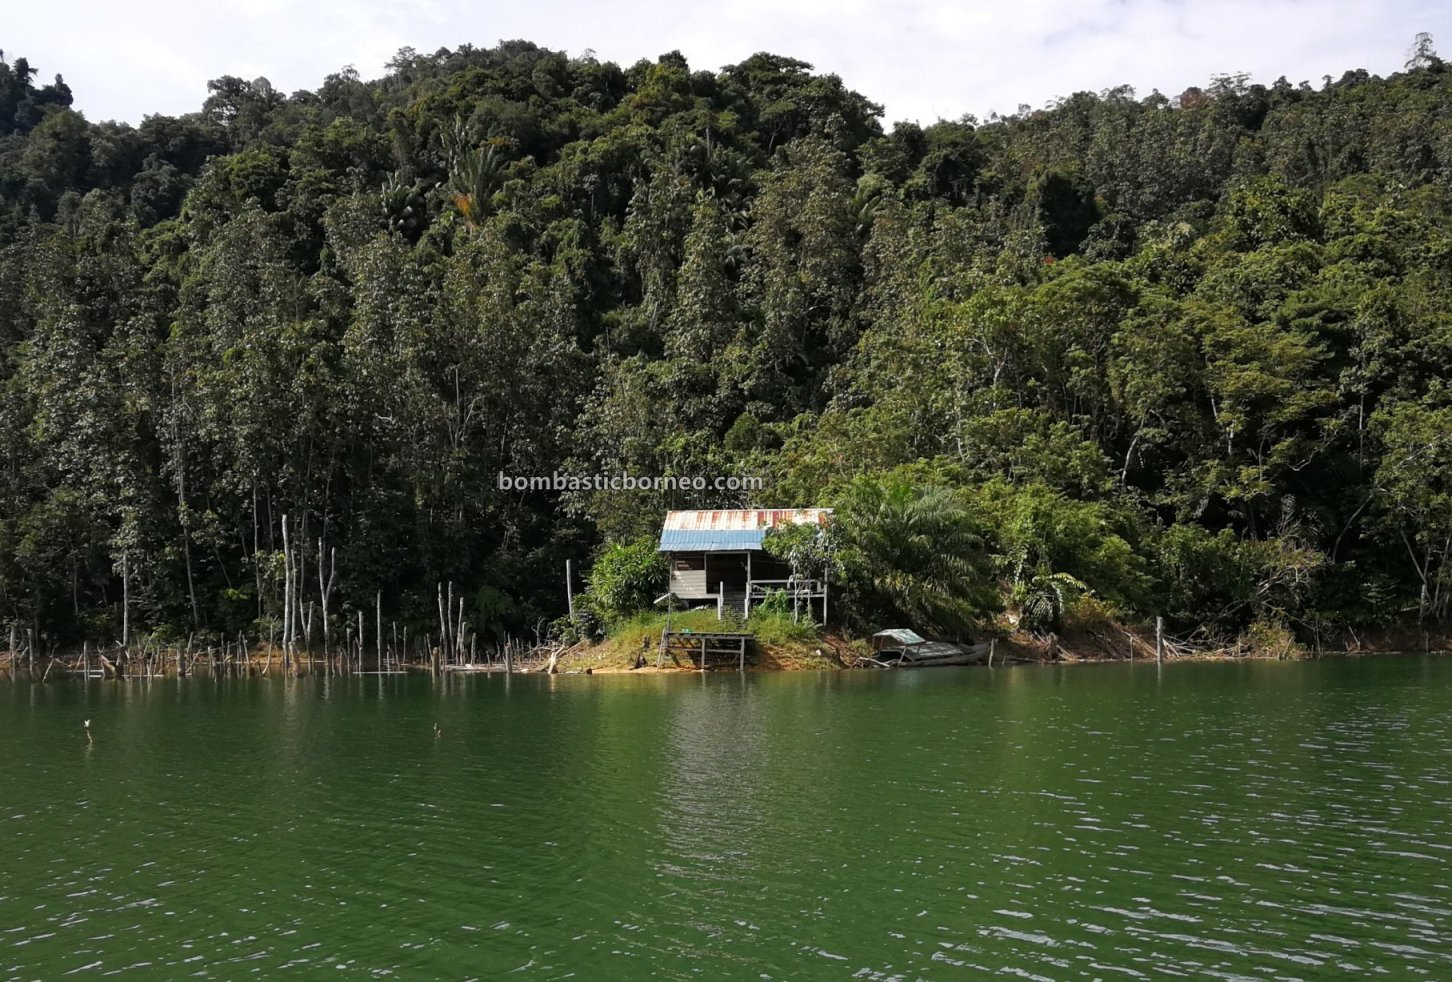 Hydroelectric Power Dam, empangan, backpackers, traditional, fishing trip, Memancing ikan, Malaysia, Tourism, tourist attraction, travel guide, Cross Border, Borneo, 砂拉越峇贡水坝, 马来西亚钓鱼之旅,